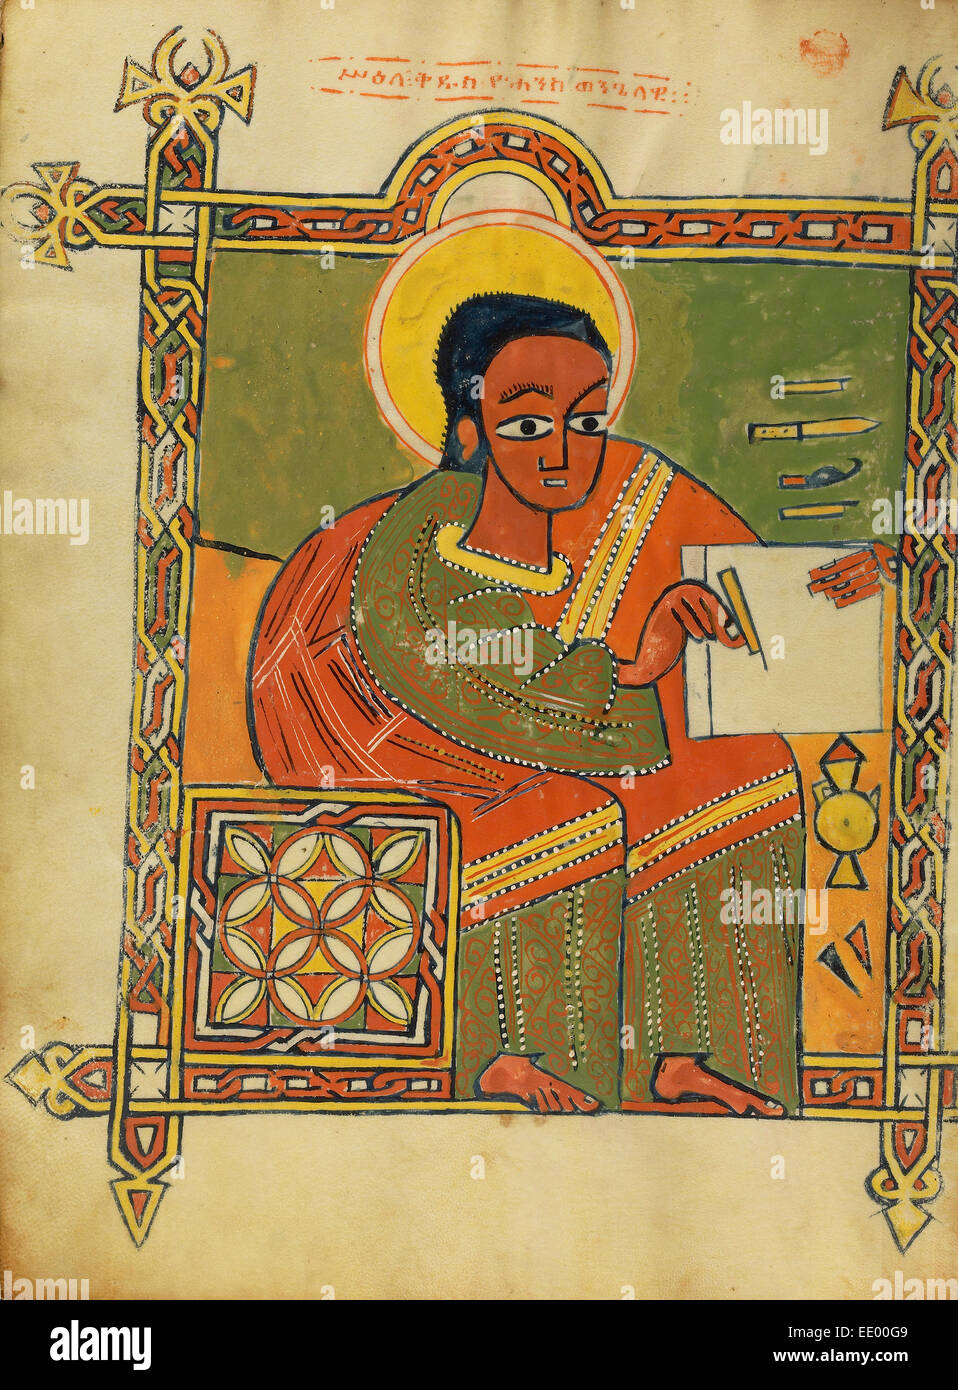 Saint John; Unknown; Ethiopia, Africa; about 1504 - 1505; Tempera on parchment - Stock Image